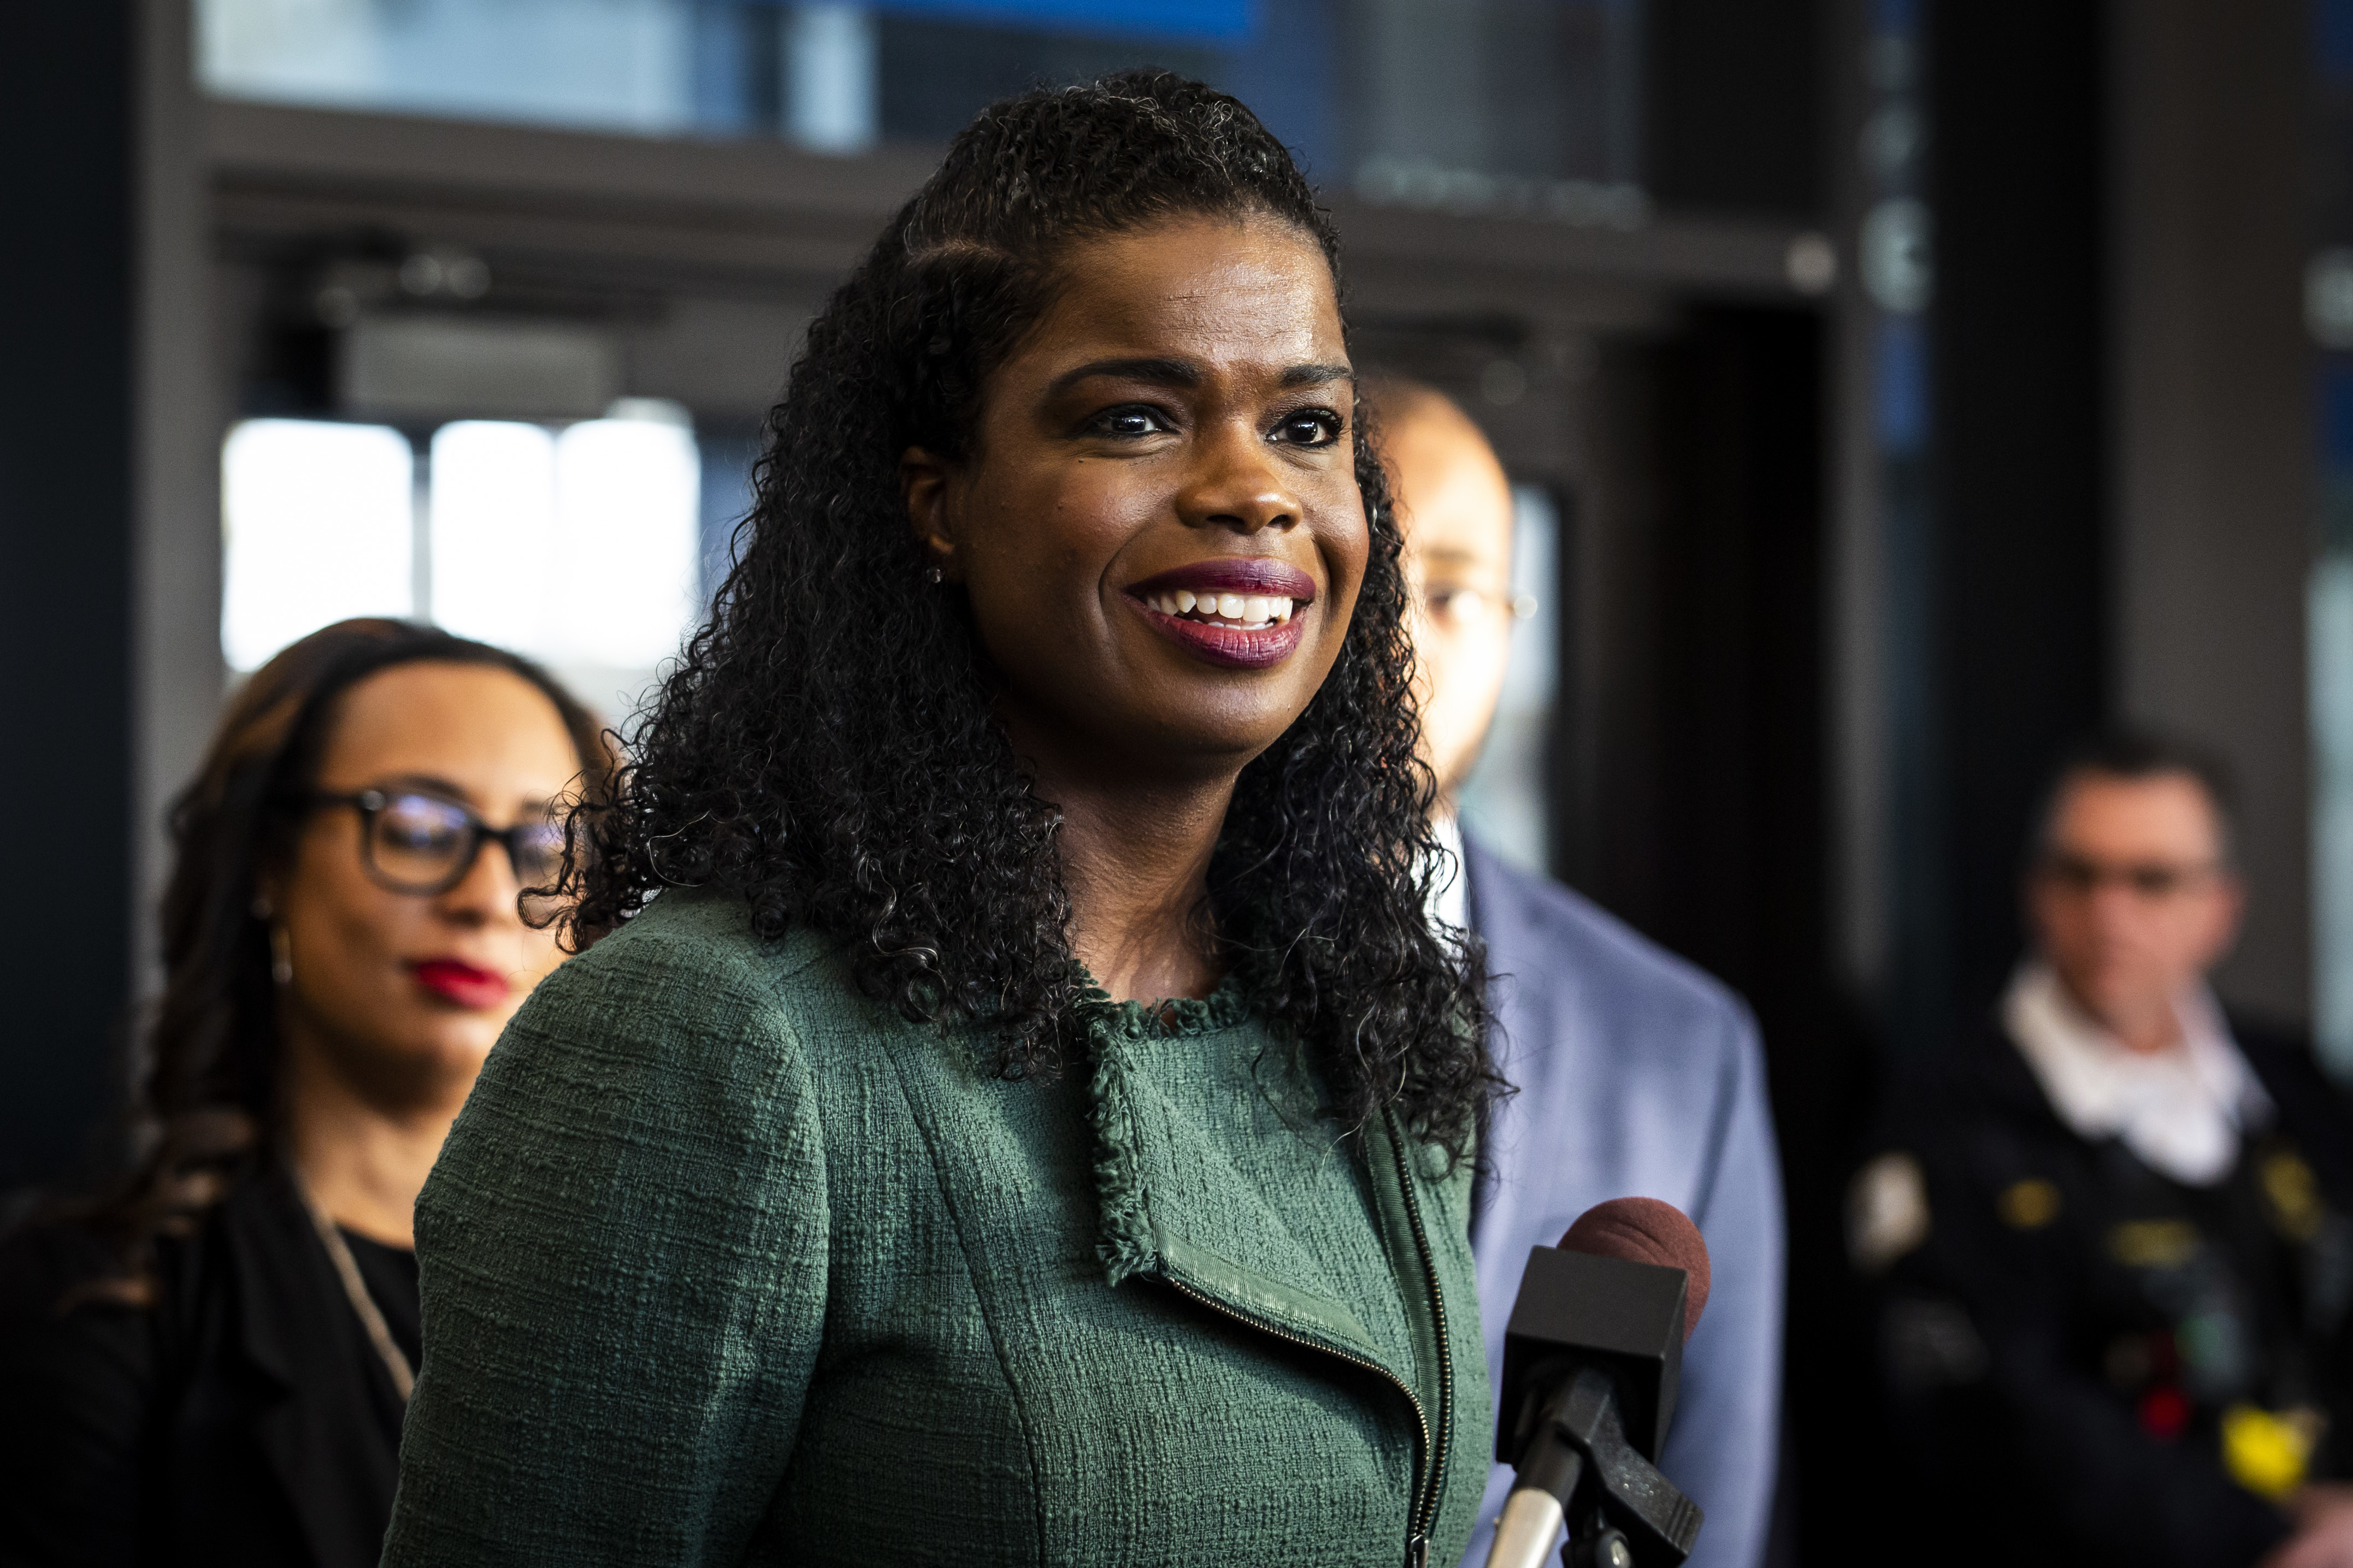 Cook County State's Attorney Kim Foxx speaks at a press conference at the Leighton Criminal Courthouse after filing motions to vacate more than 1,000 low-level cannabis convictions.